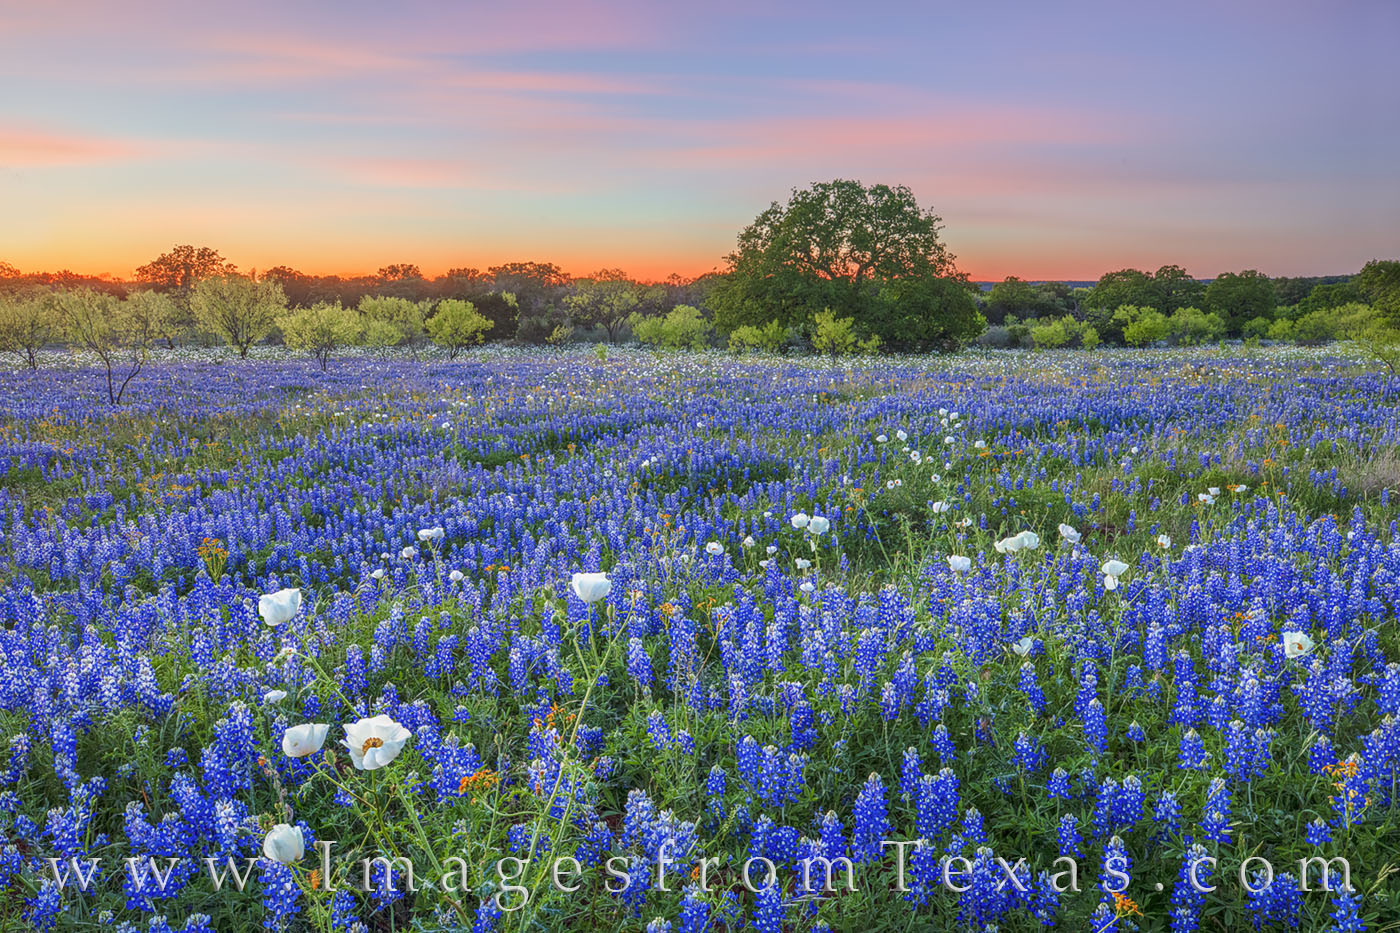 Bluebonnets, wildflowers, poppies, prickly poppies, sunset, evening, pastel colors, backroads, rural, dirt road, focus stacking